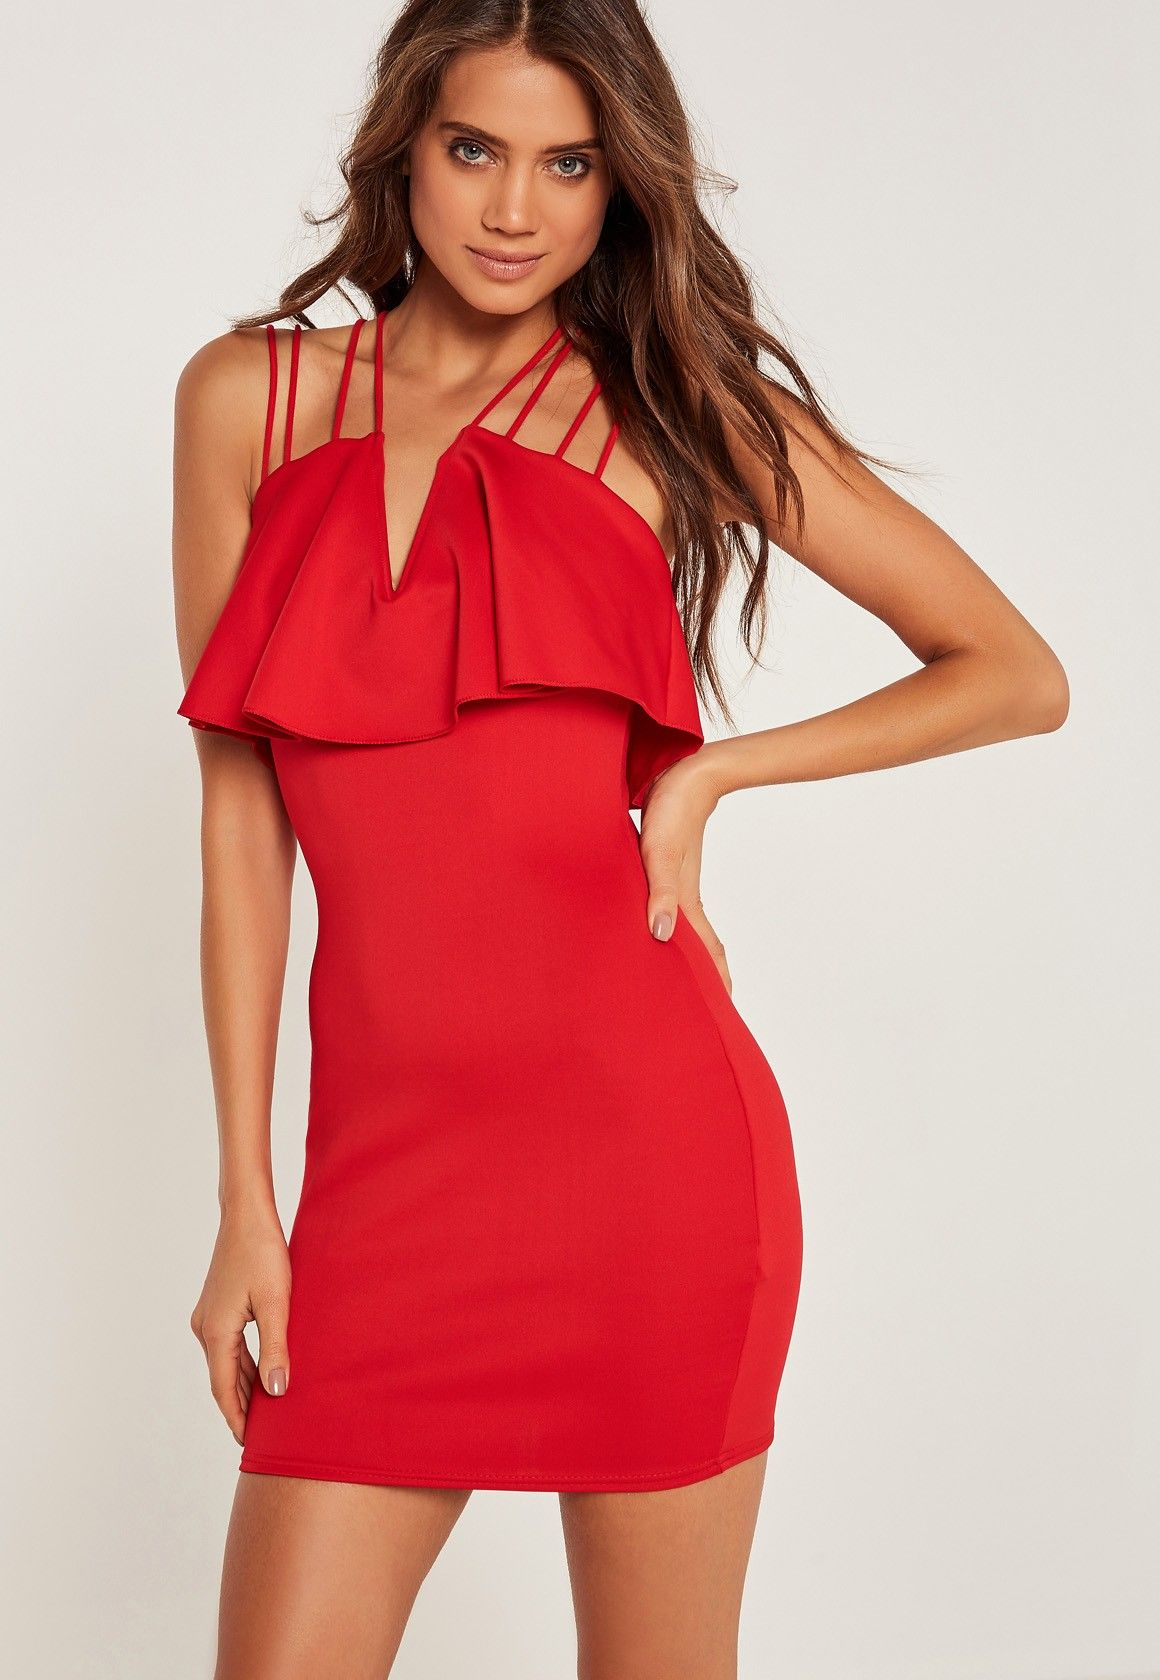 75bf332502 Missguided - Robe rouge moulante à lanières | Red For Bed in 2019 ...